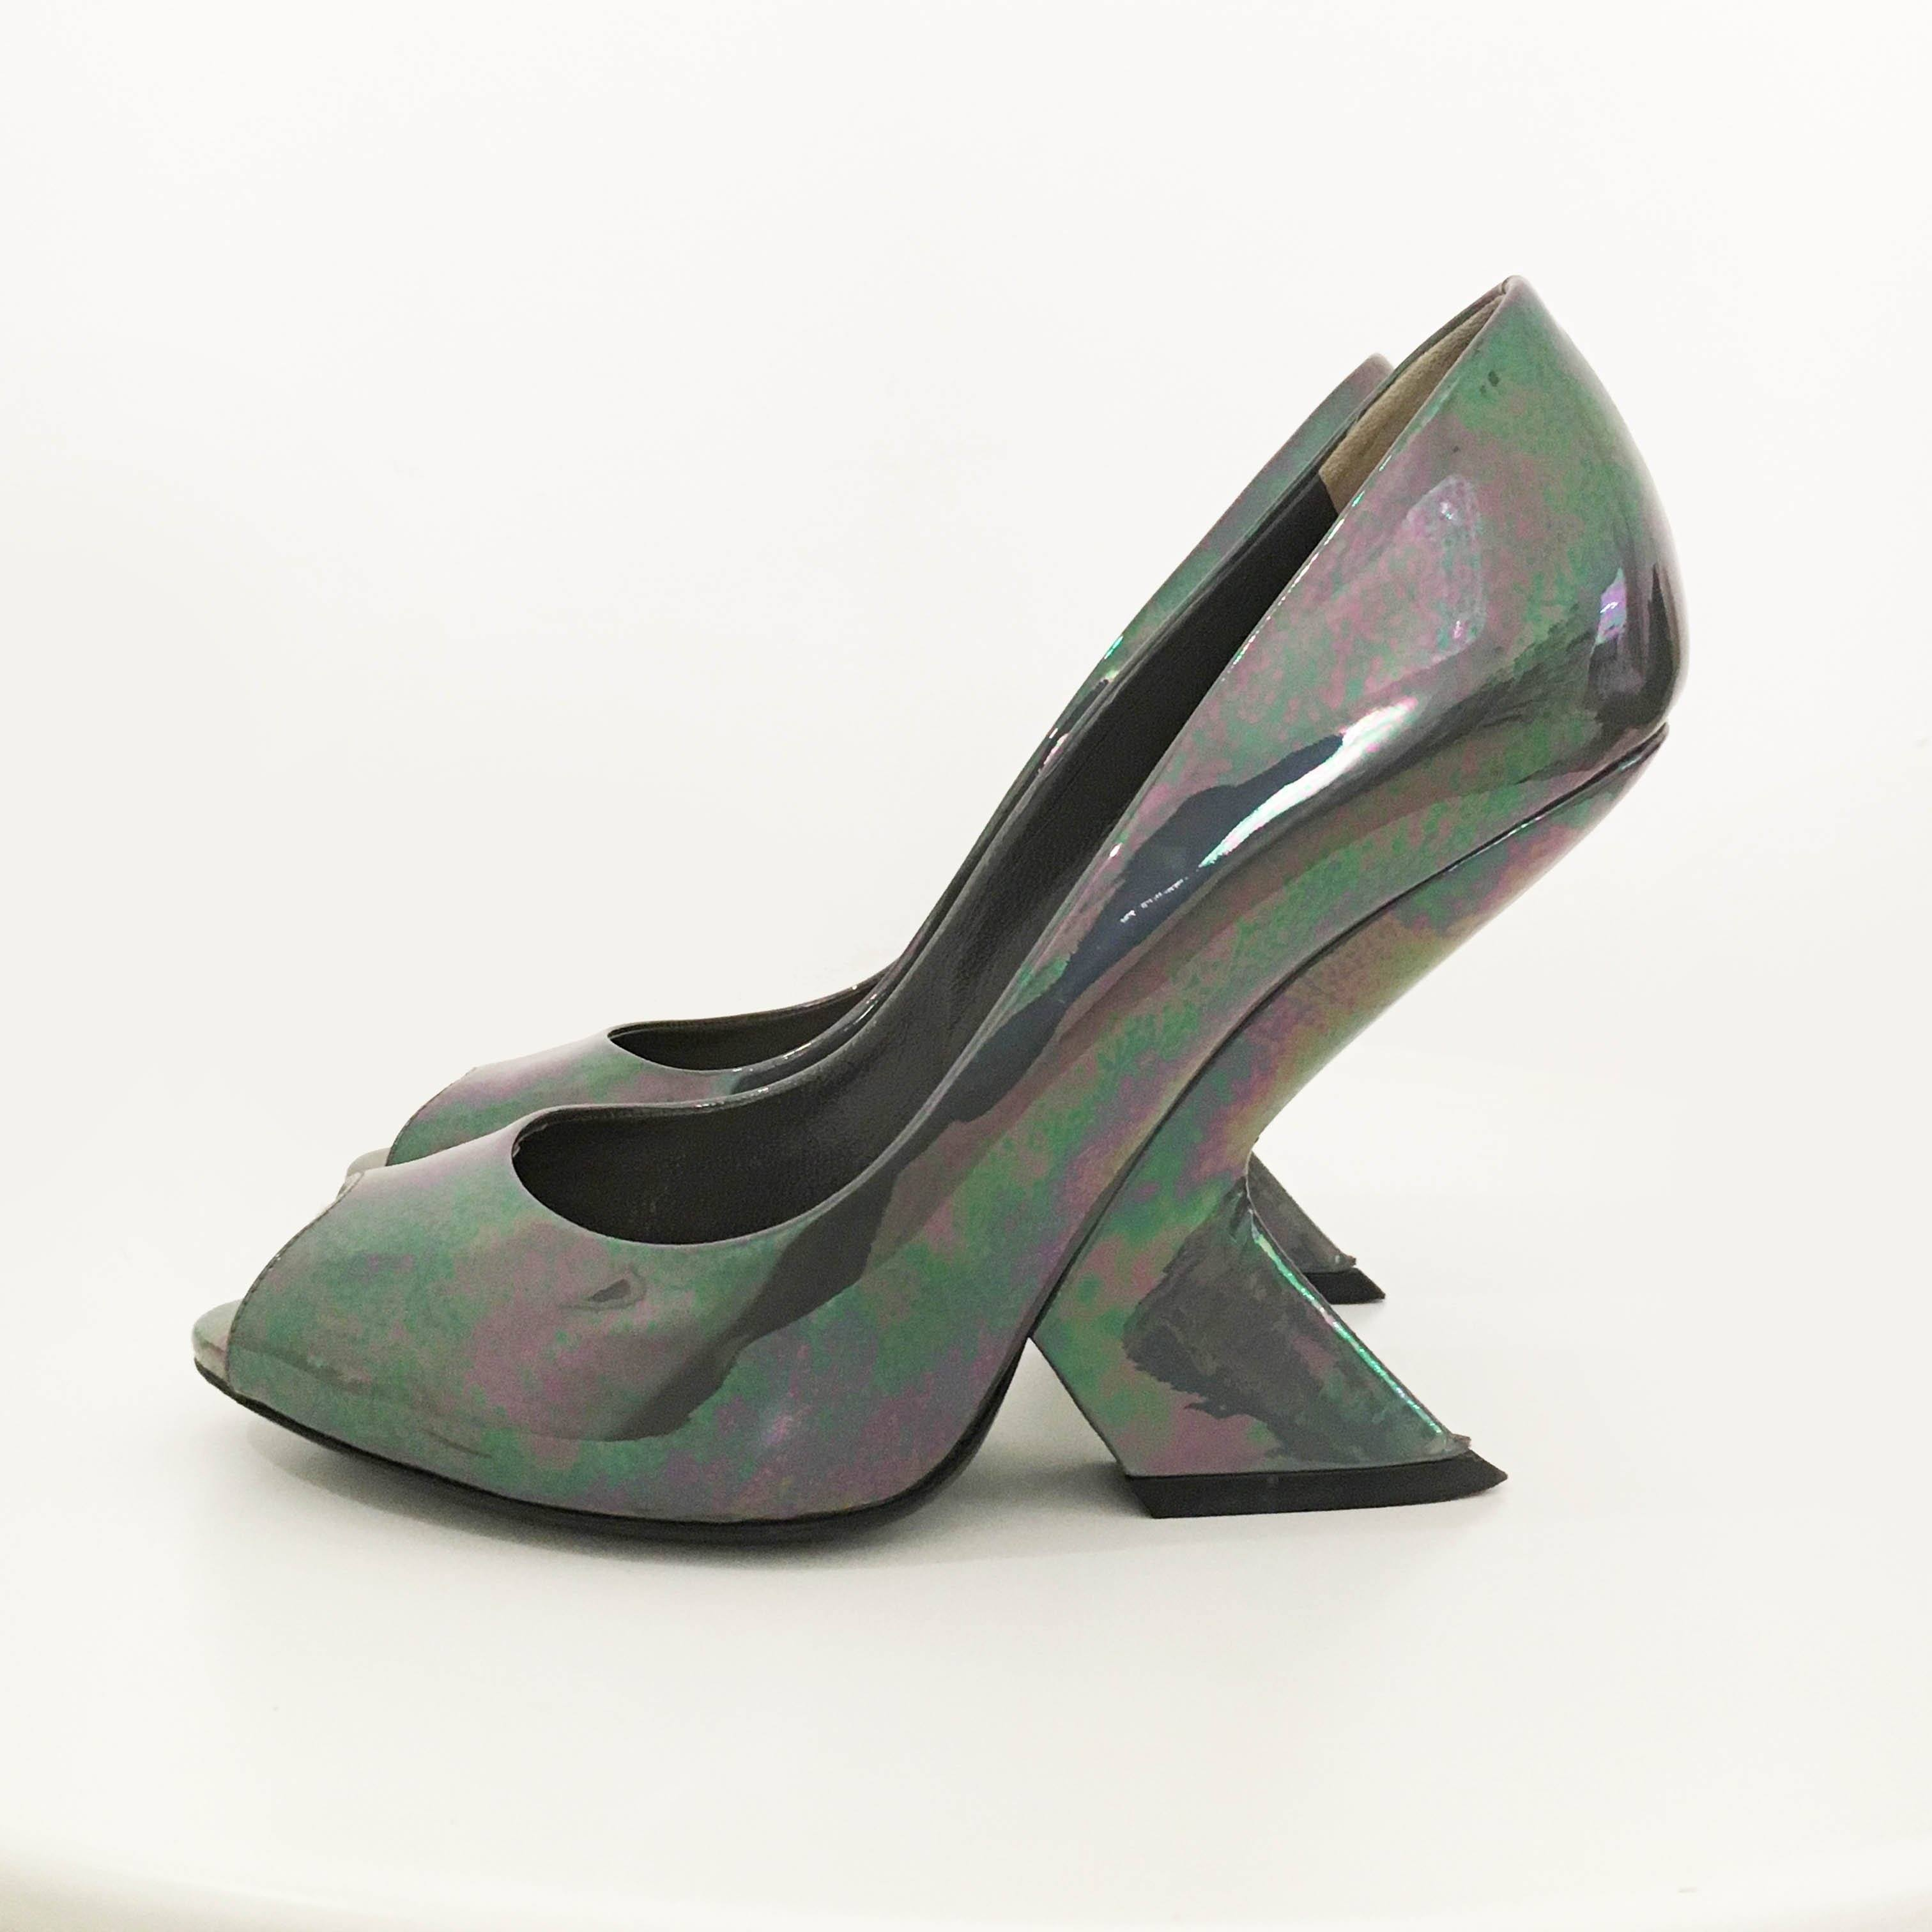 Christian Dior Peep Toe Pumps with Slanted Heels